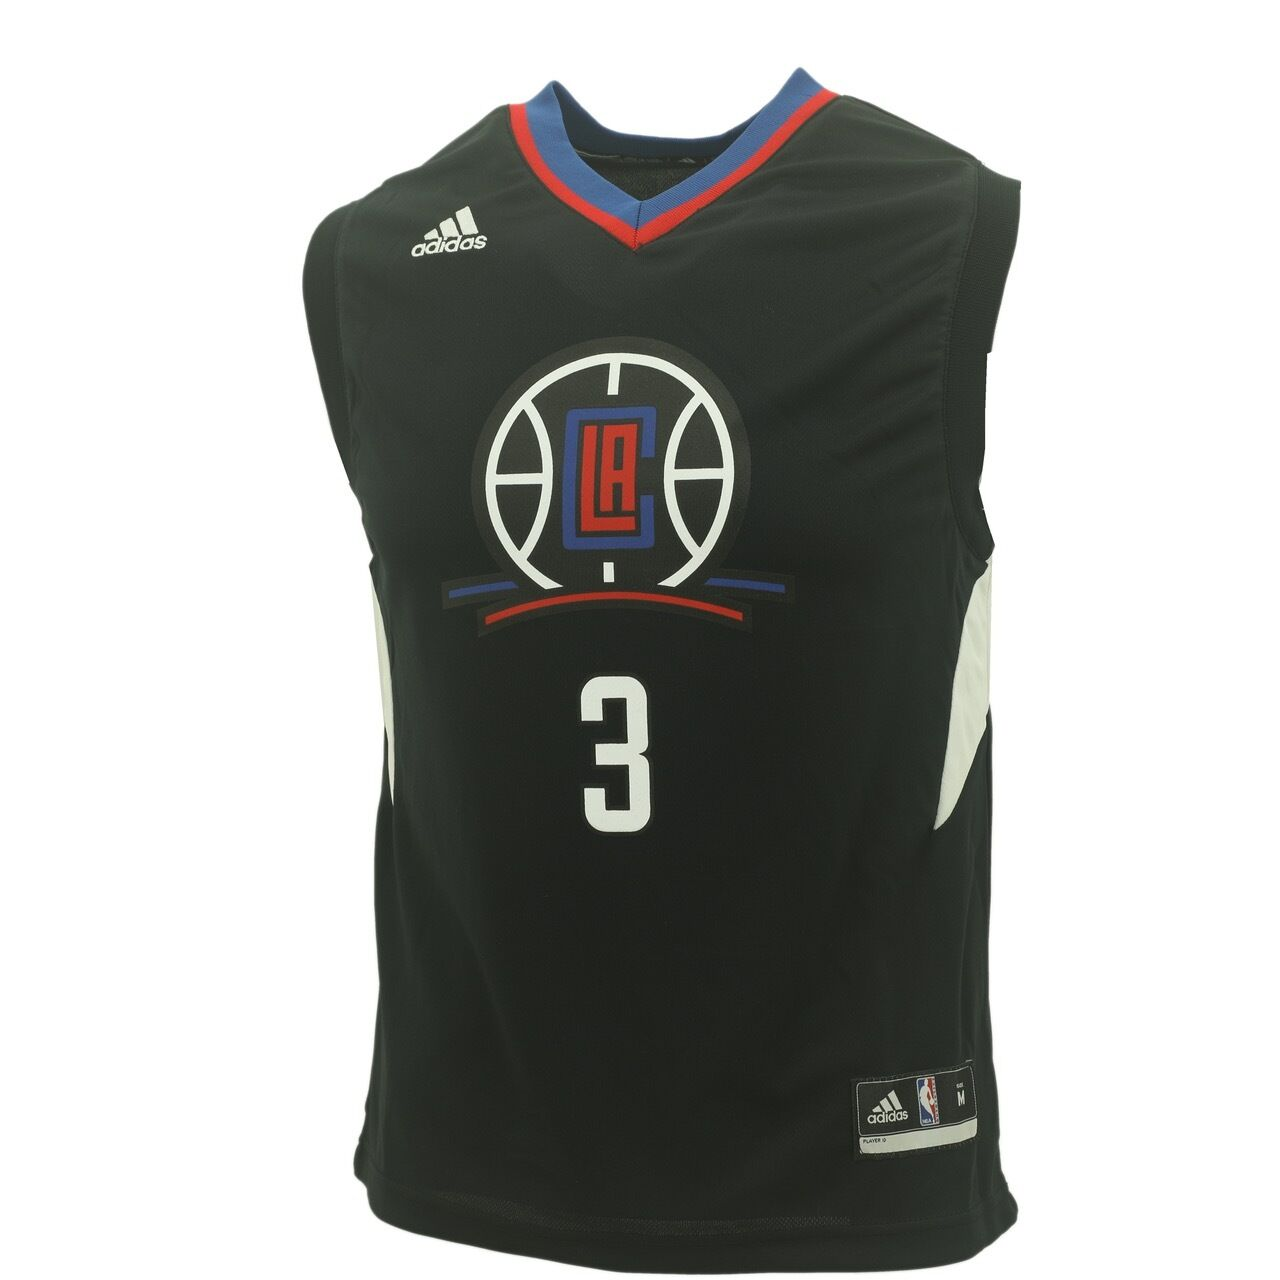 bdf09a3d8ebb Adidas Kids Youth Size Chris Paul Los Angeles Clippers official NBA Jersey  New